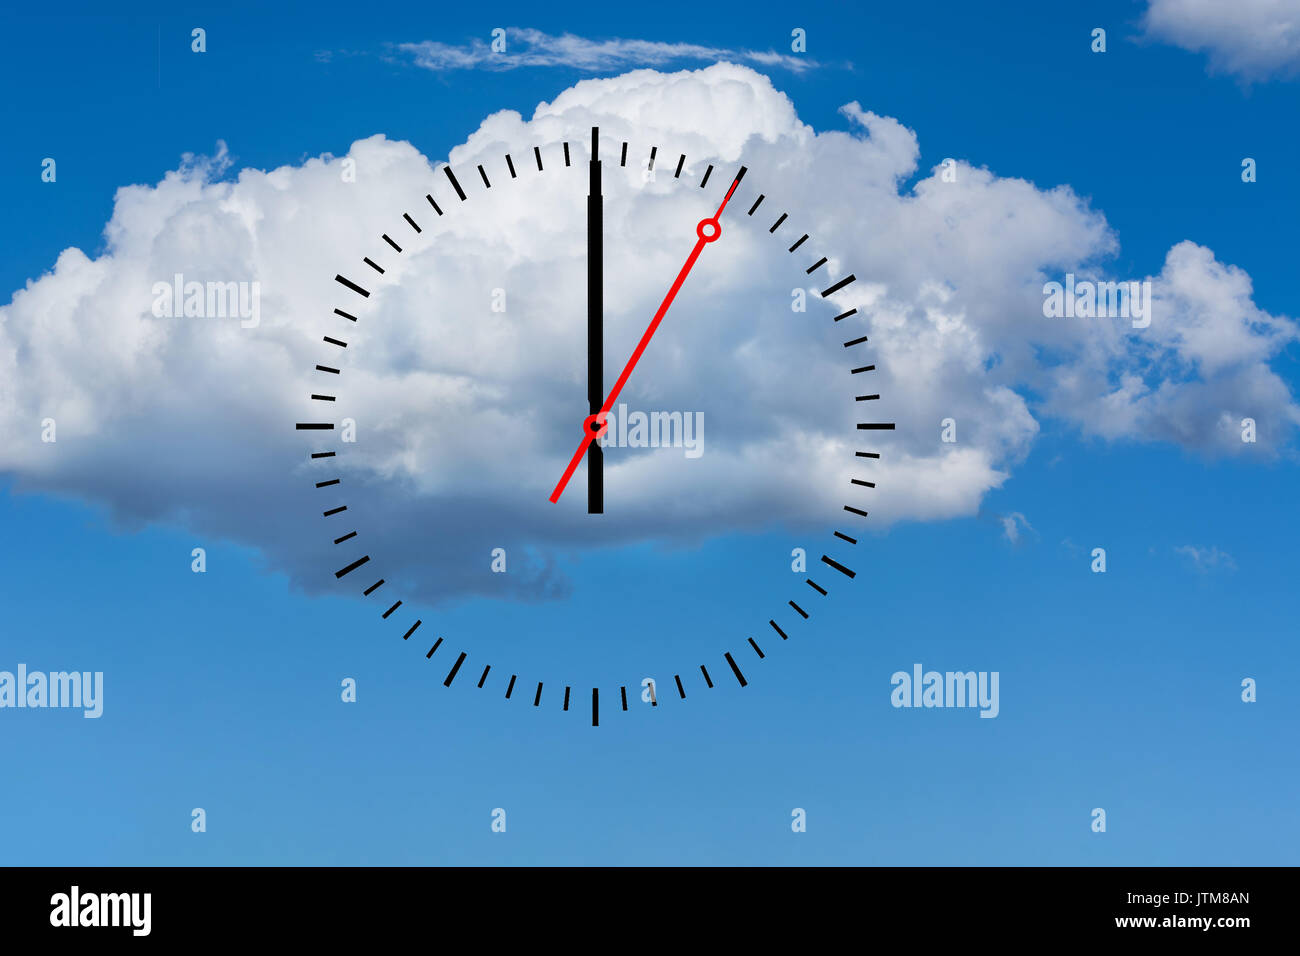 Clock, dial with a minute hand and a red second hand indicates 12 o'clock. Copy space in front of sky and cloud background. - Stock Image